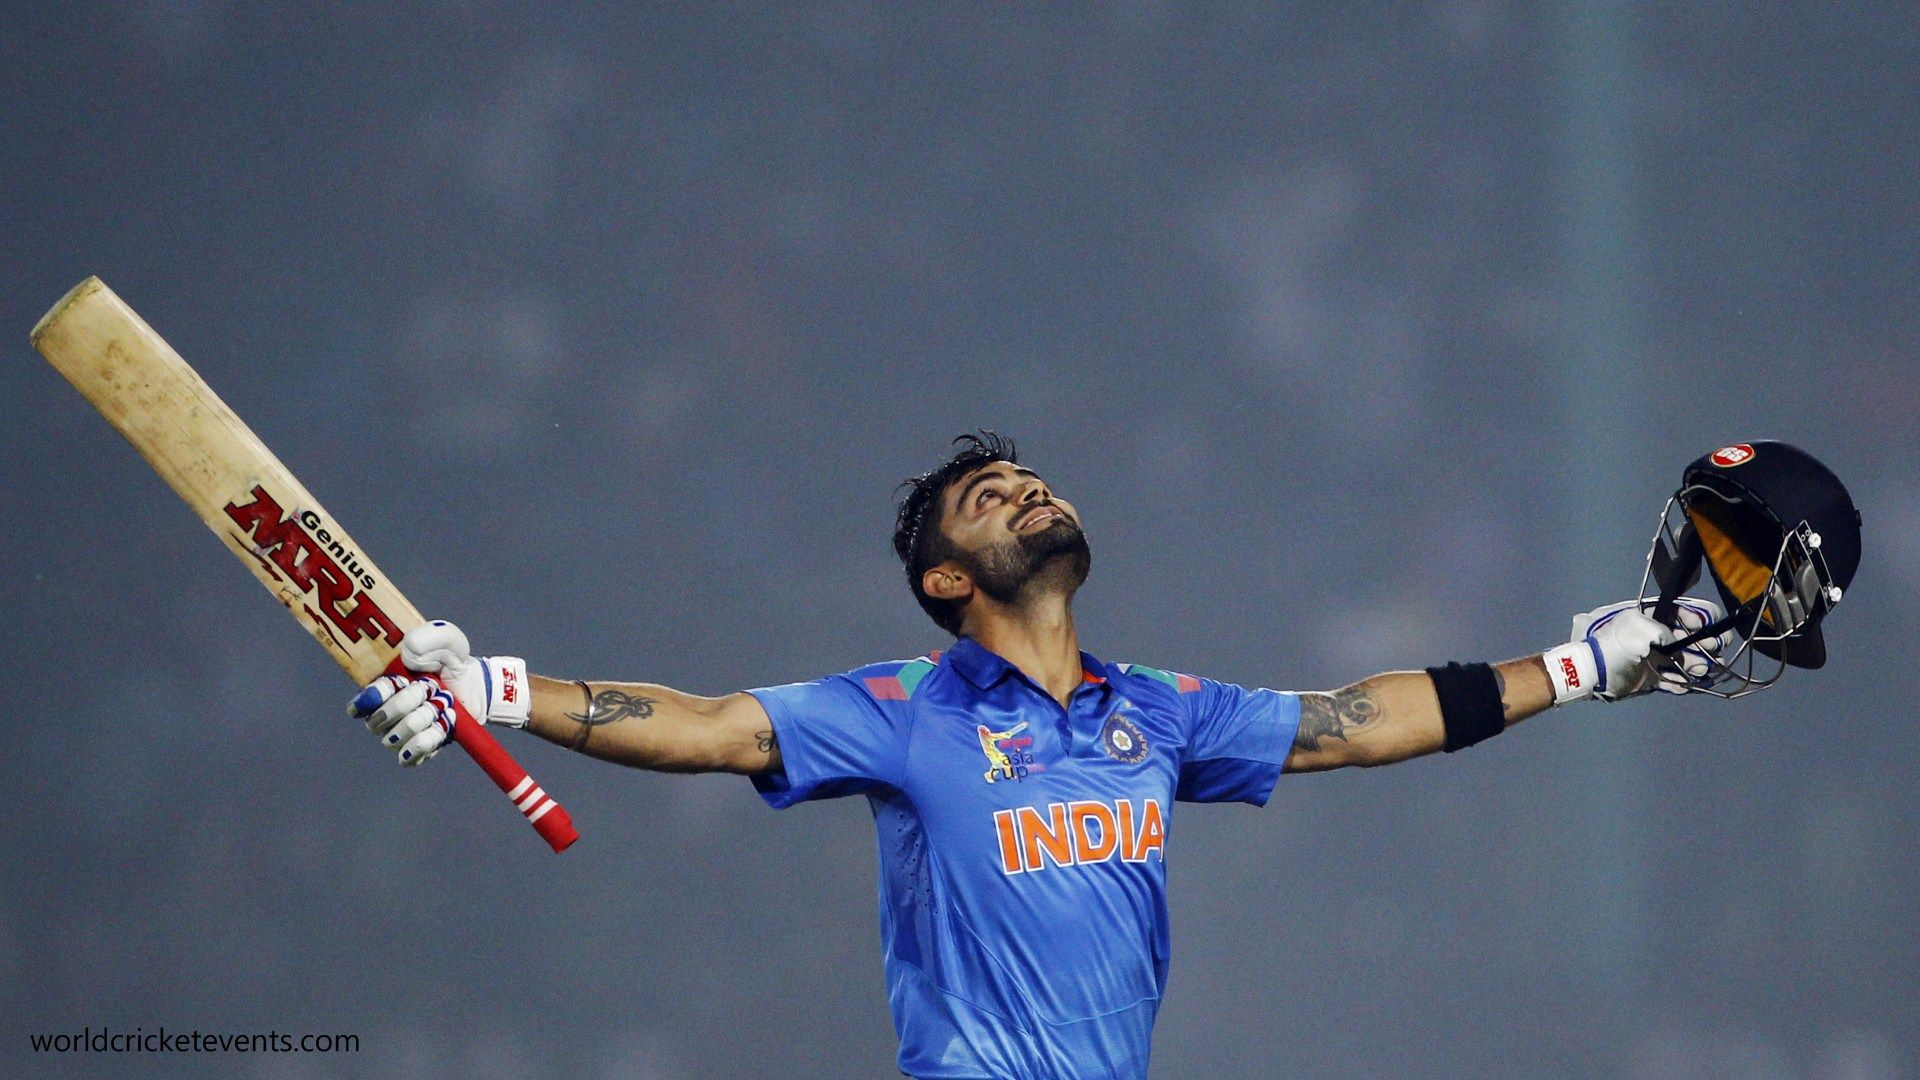 Virat Kohli Best Hd Wallpapers For Laptop Http